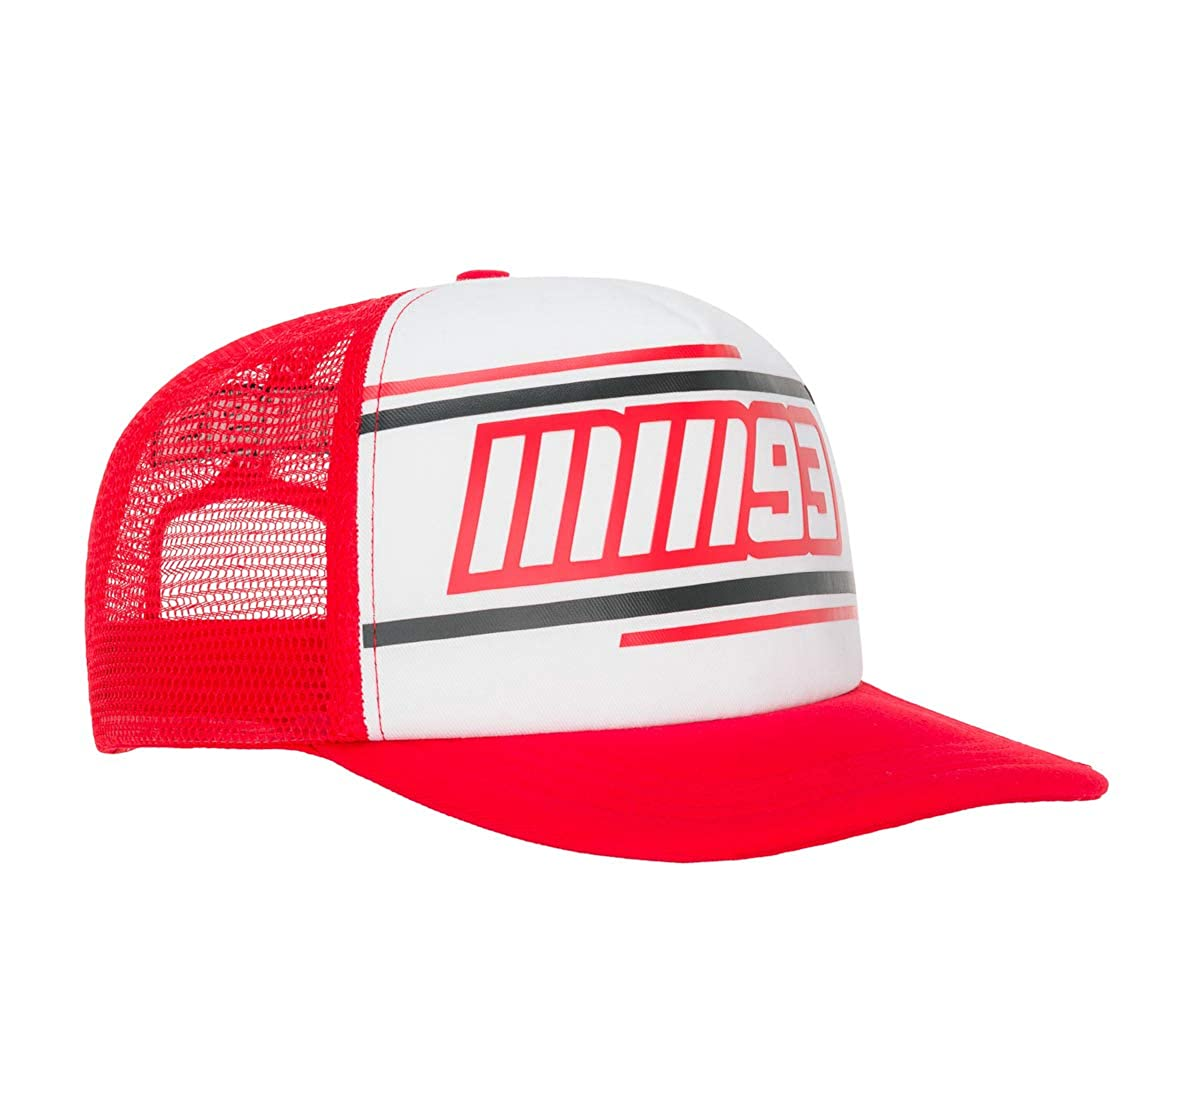 MM93 Gorra Marc Marquez - Camionero Blanco: Amazon.es: Ropa y ...